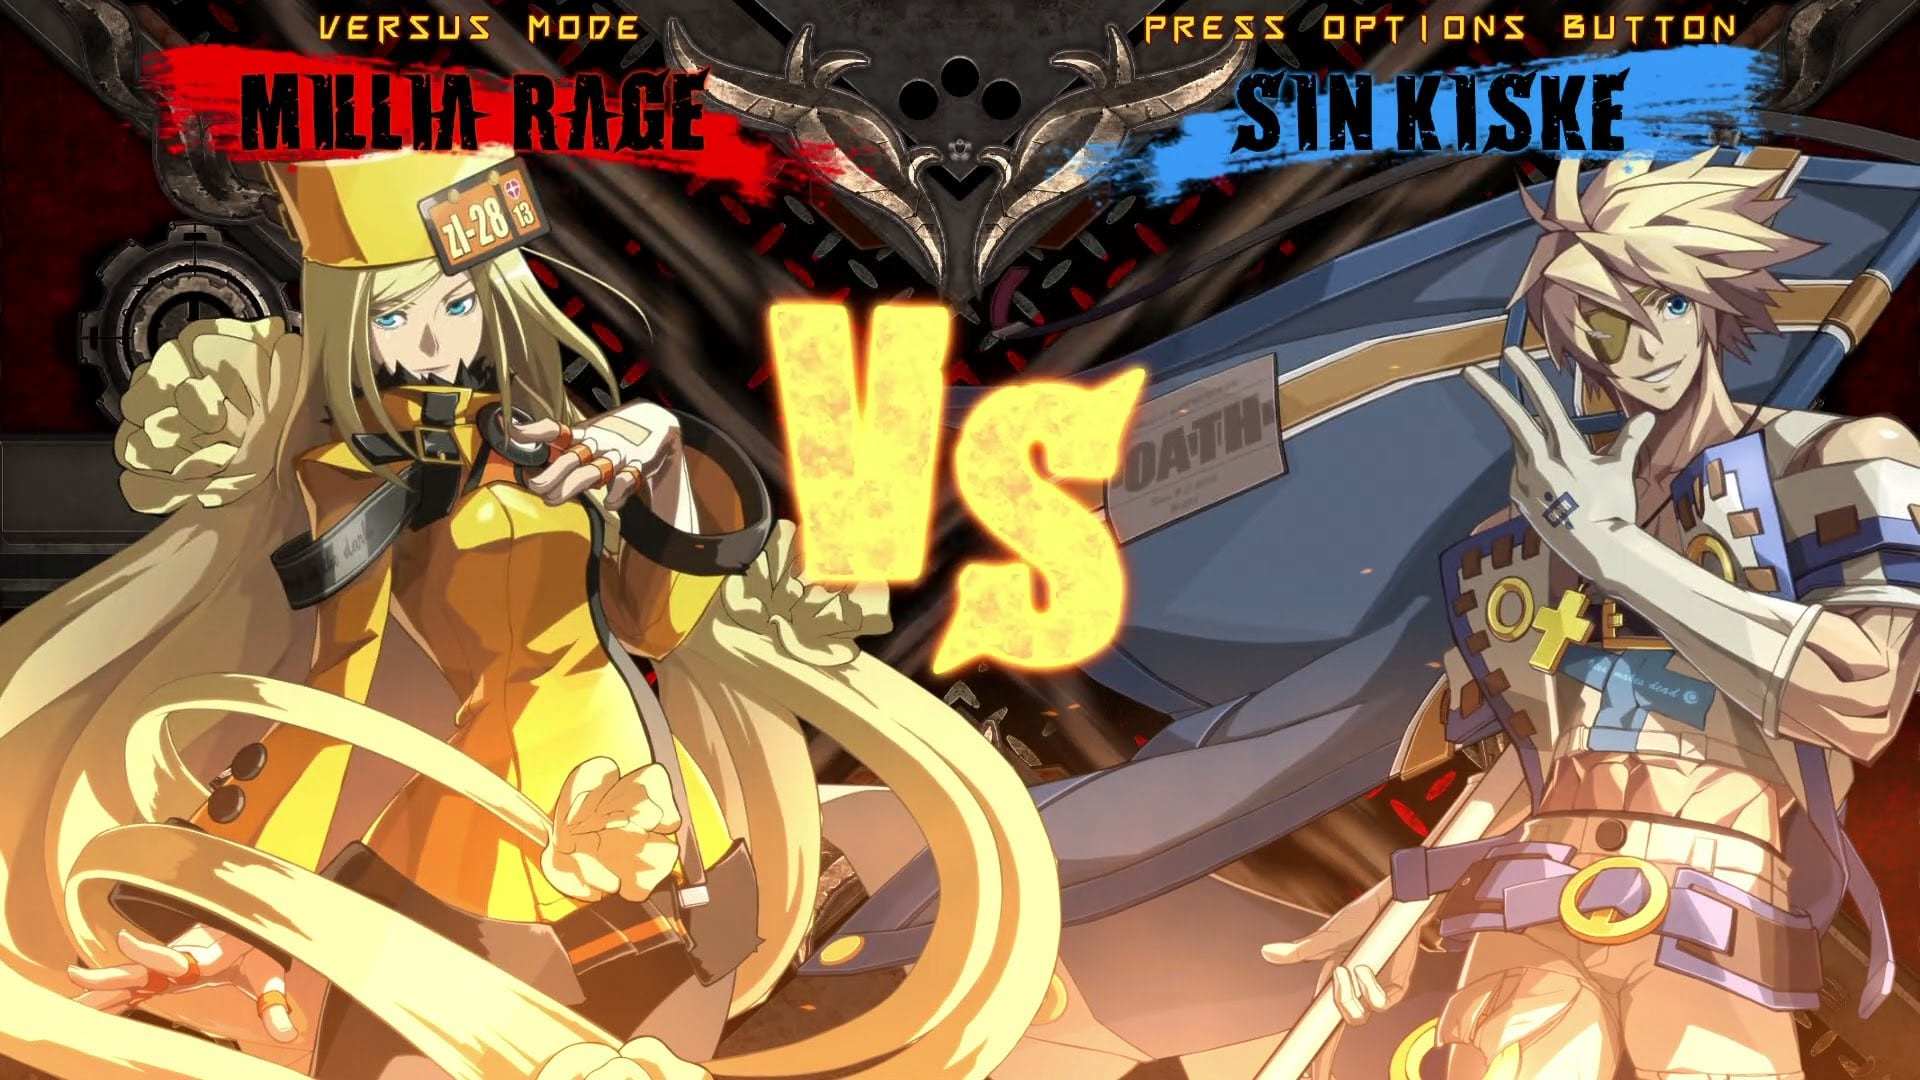 Guilty Gear: Millia Rage Full hd wallpapers